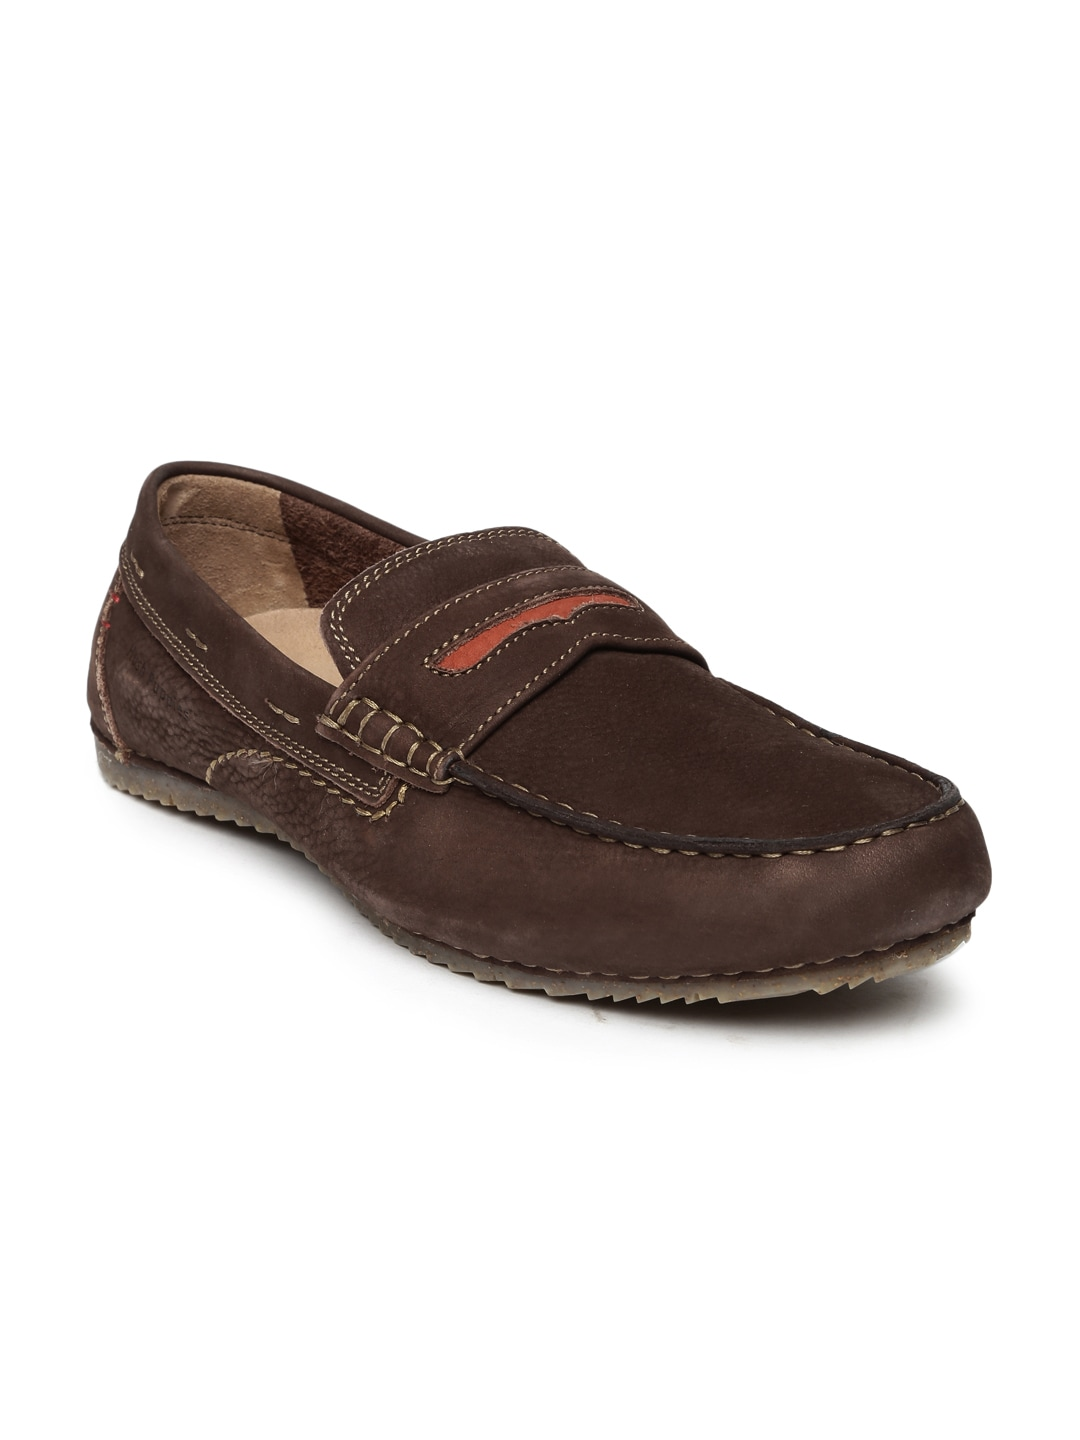 73273b6e05fd Hush Puppies - Buy Hush Puppies shoes Online in India